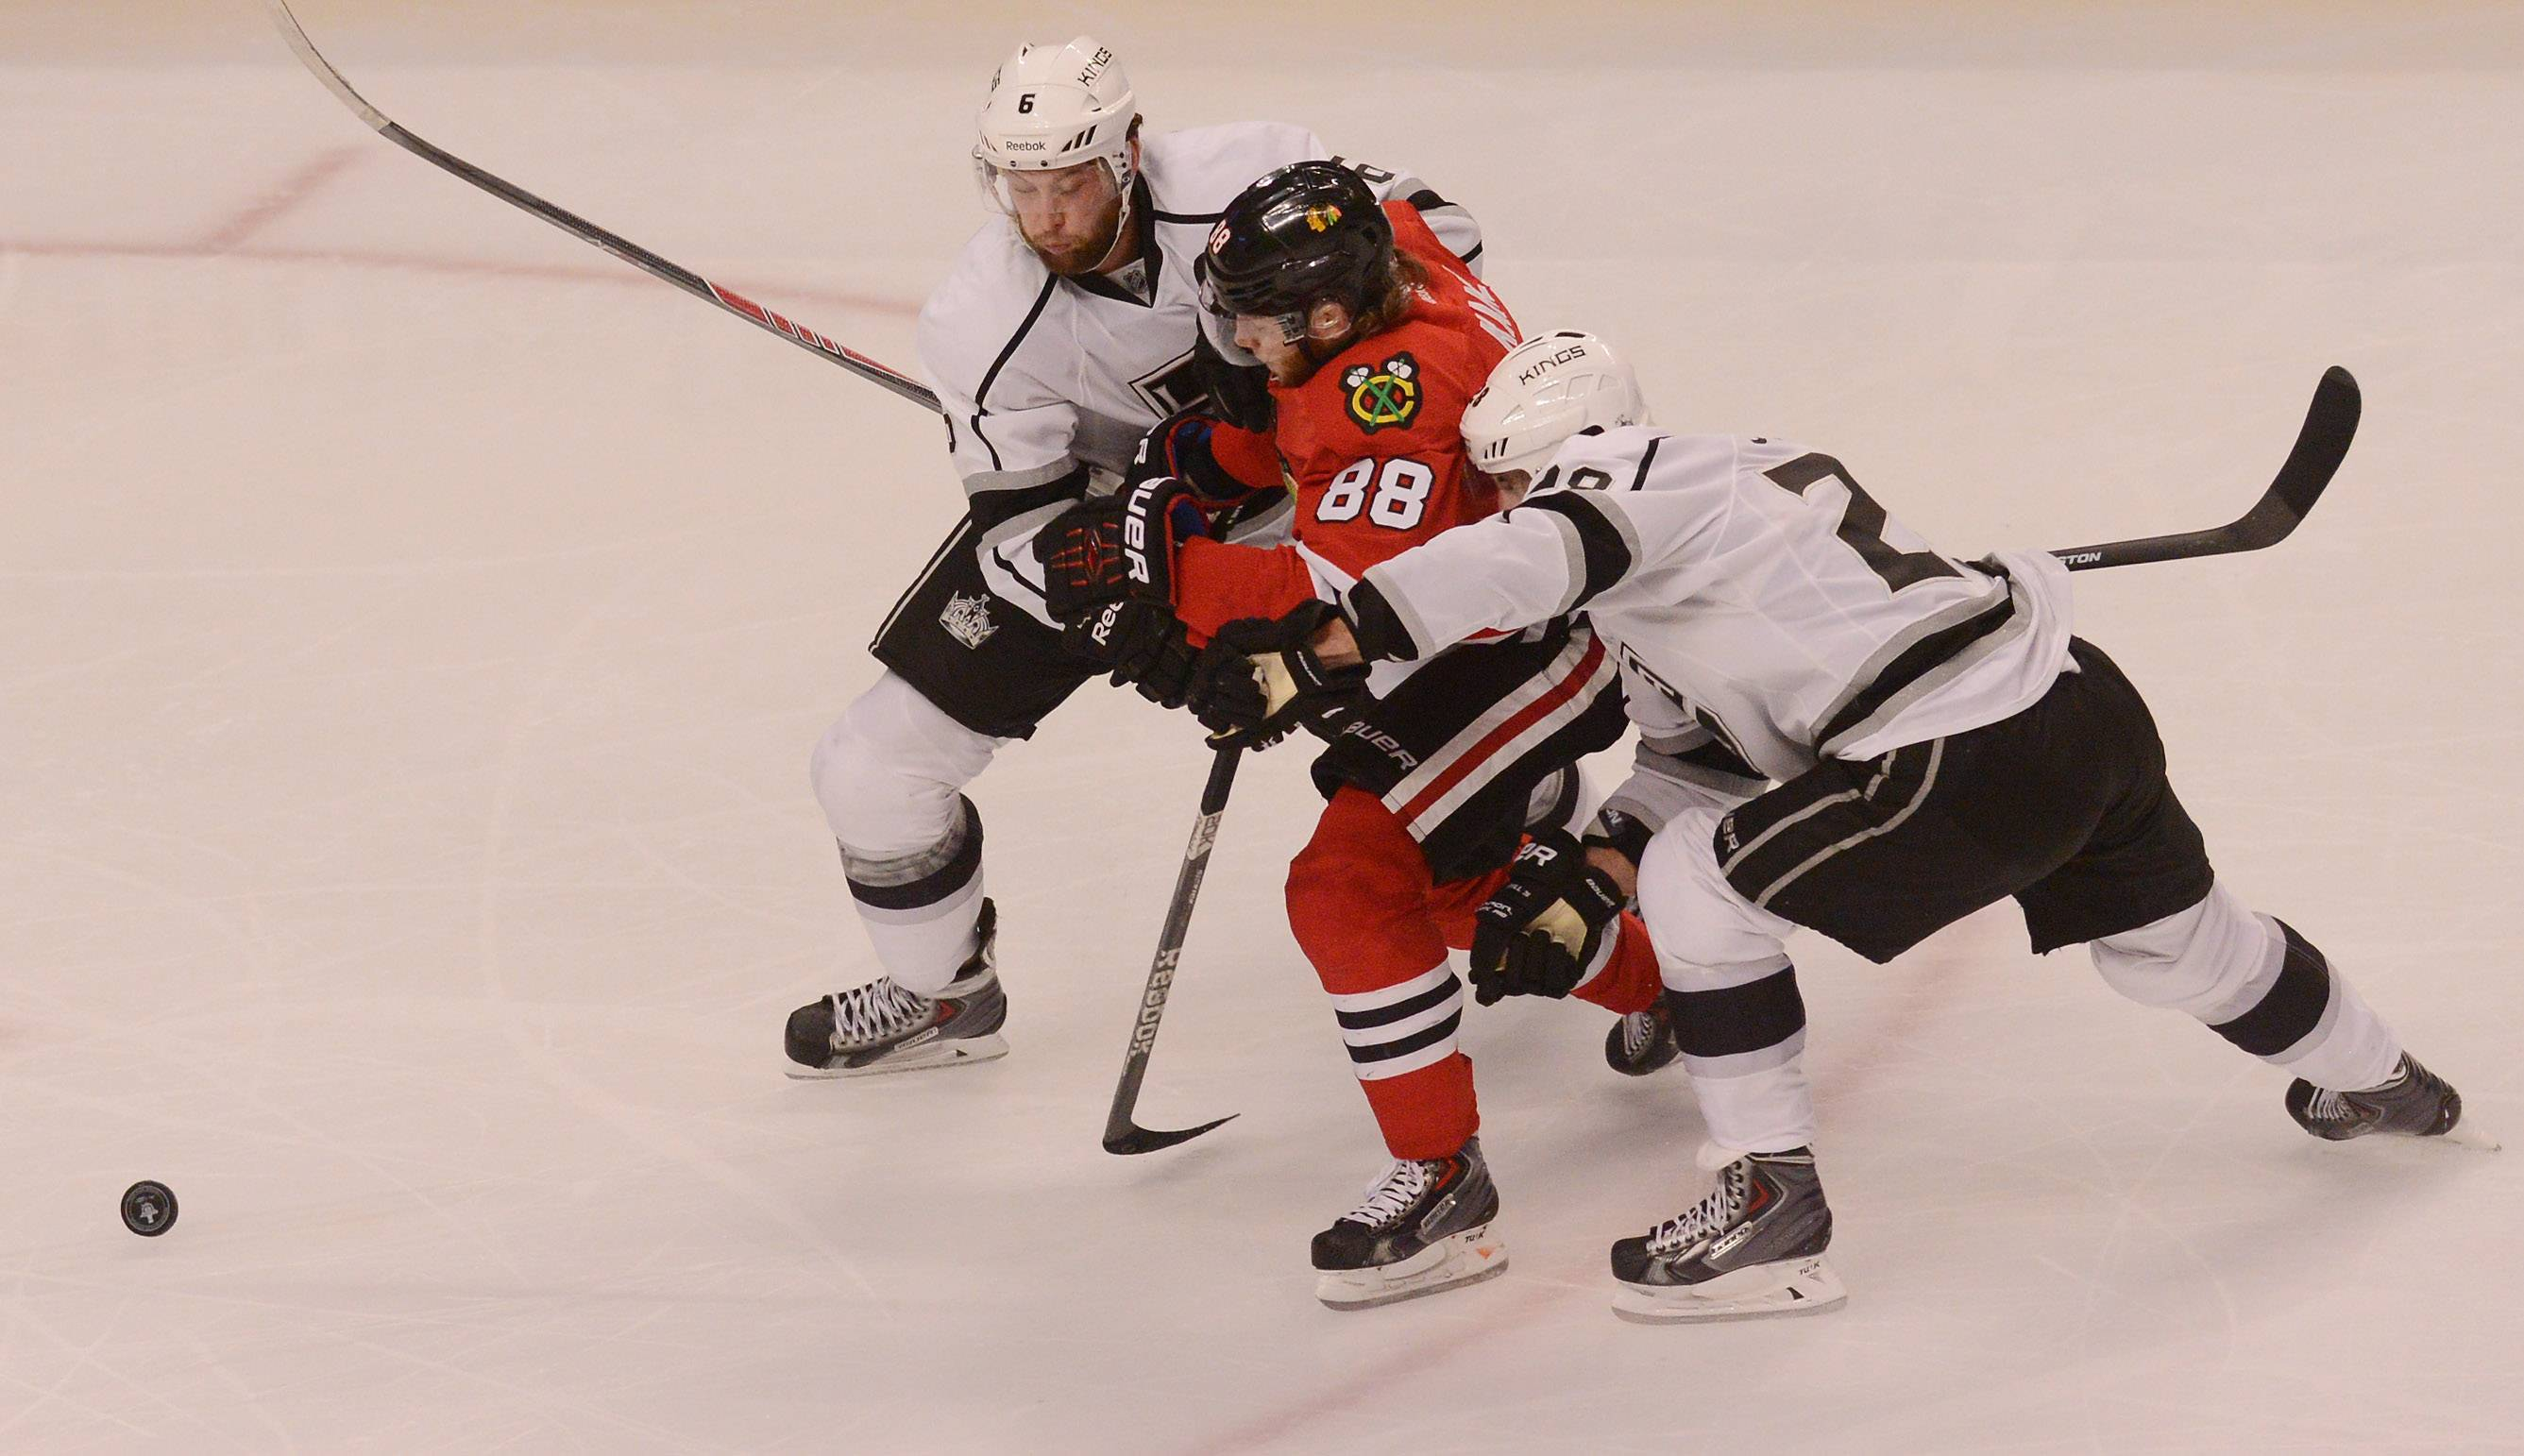 Chicago Blackhawks right wing Patrick Kane is sandwiched between two Kings players in the third period.